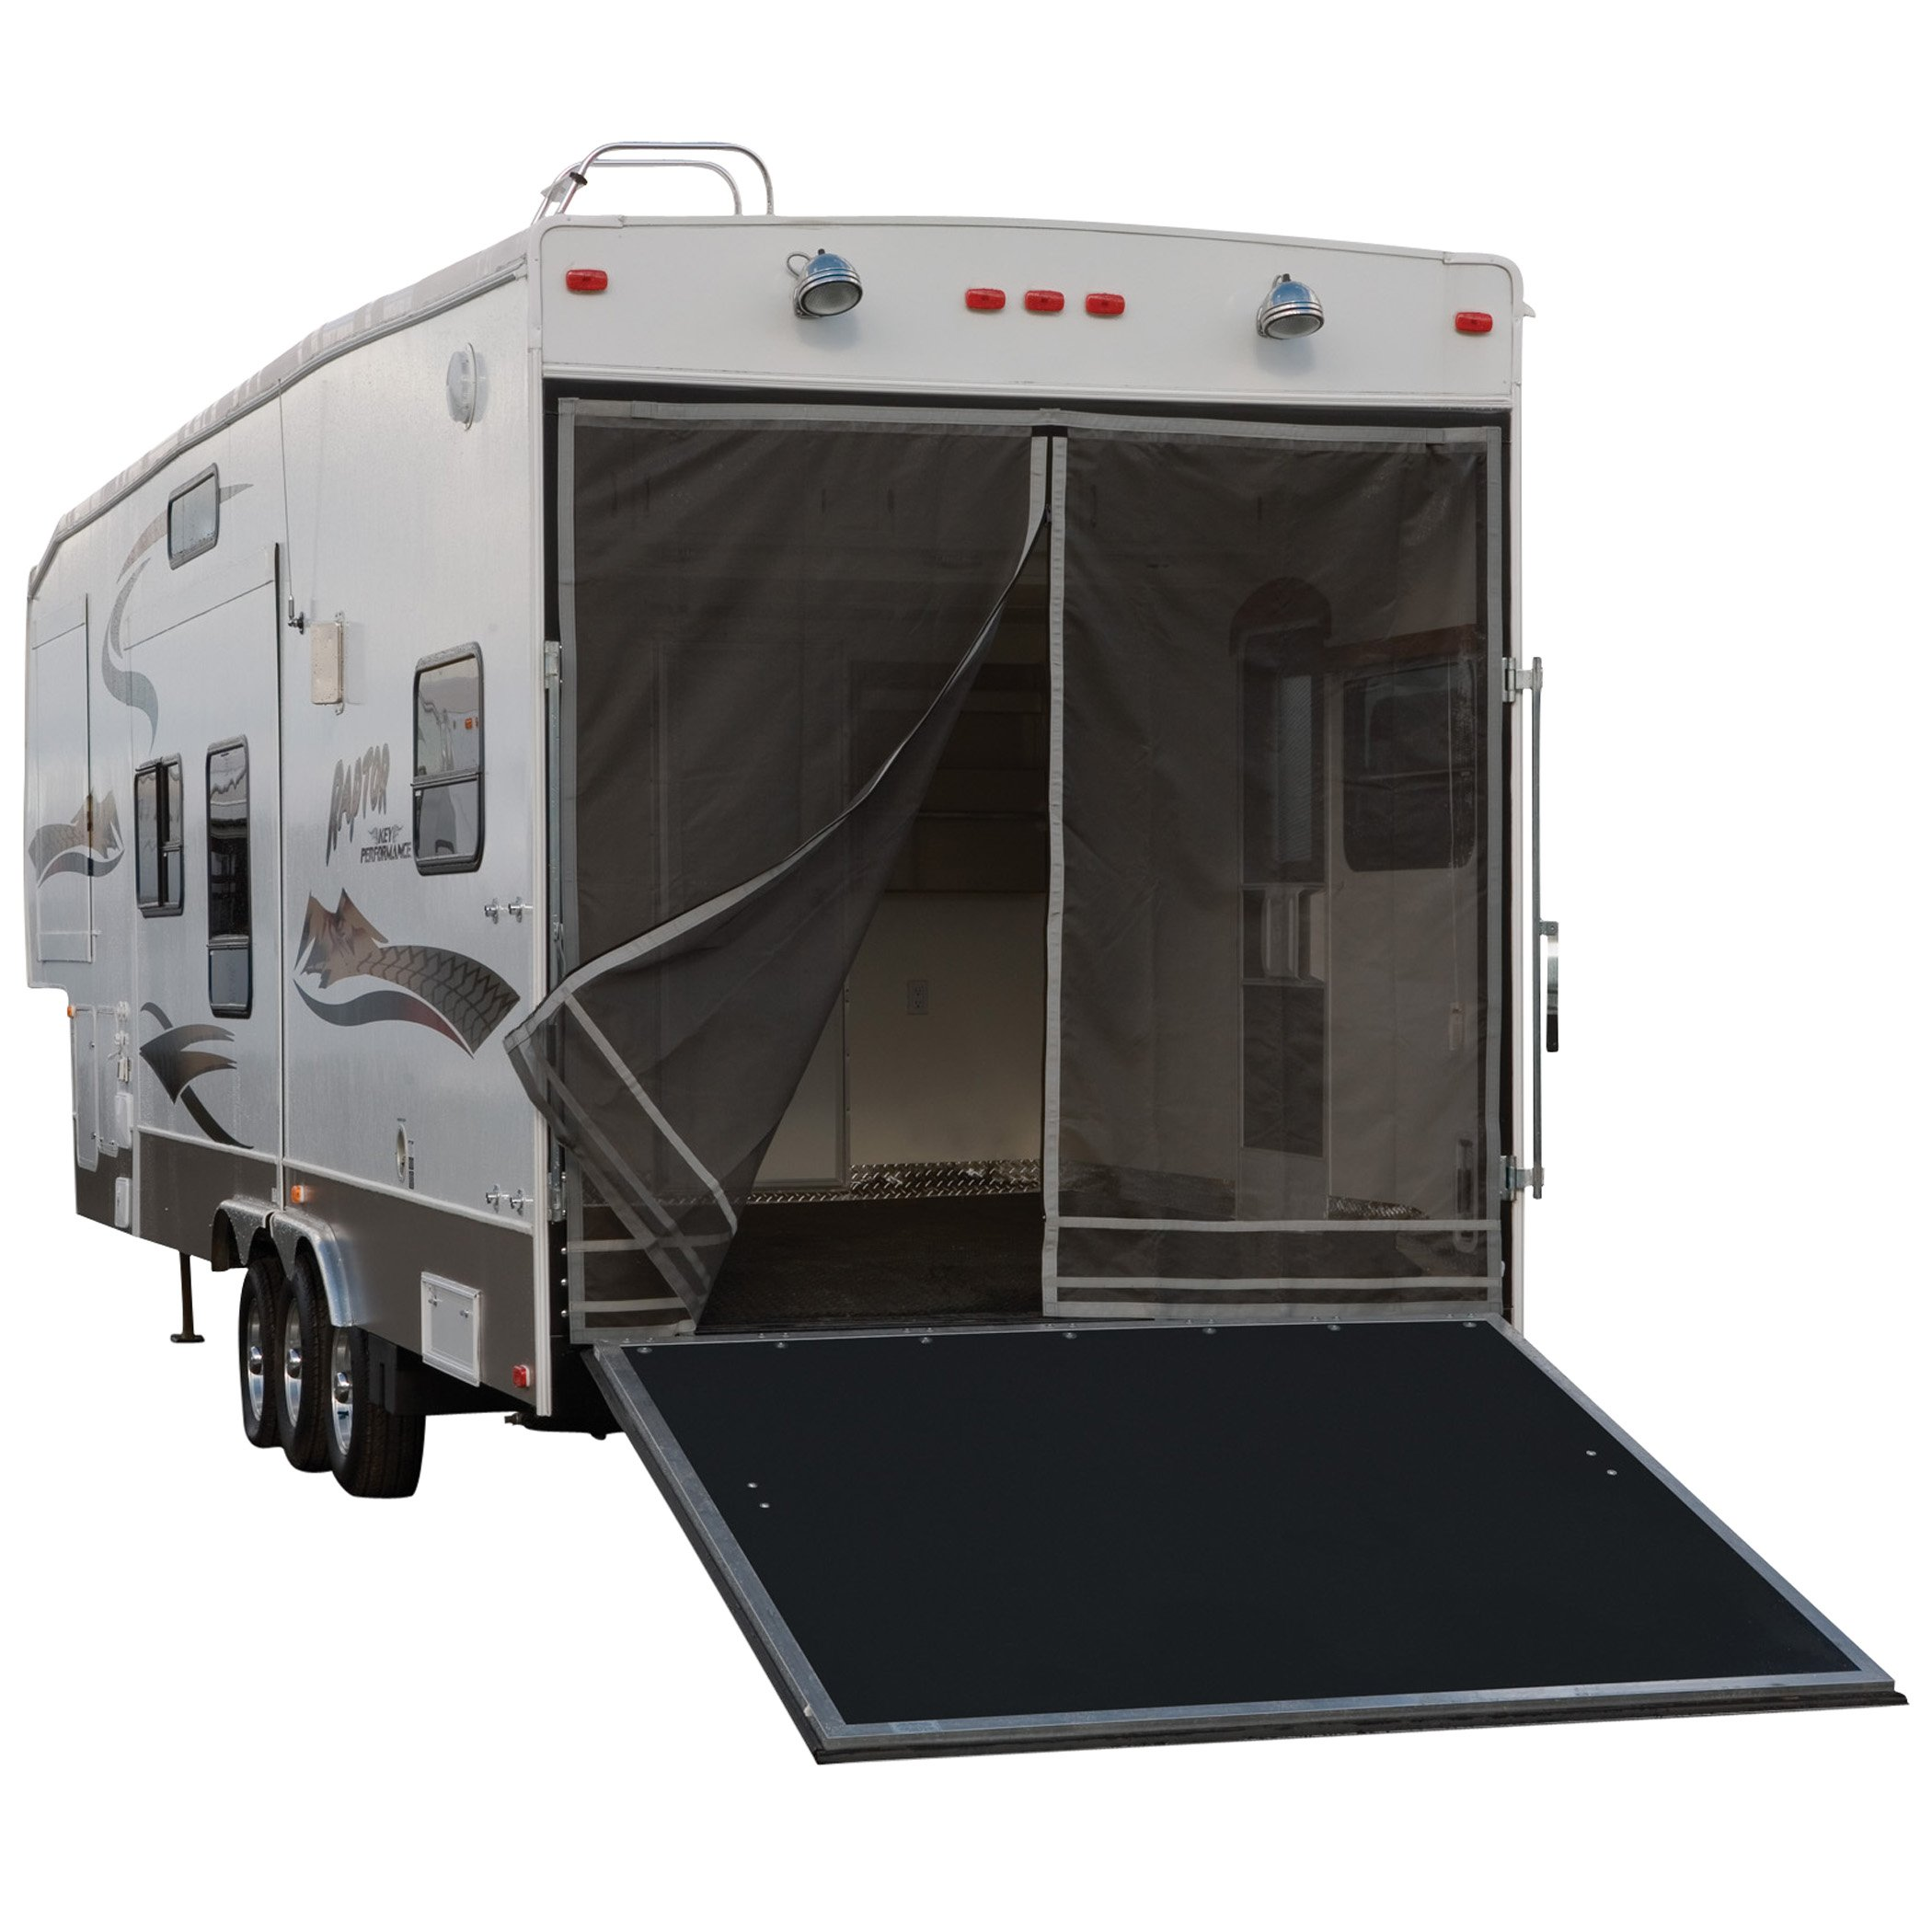 Classic Accessories RV Toy Hauler Trailer Tailgate Bug/Shade Adjustable Screen, Steel Frame by Classic Accessories